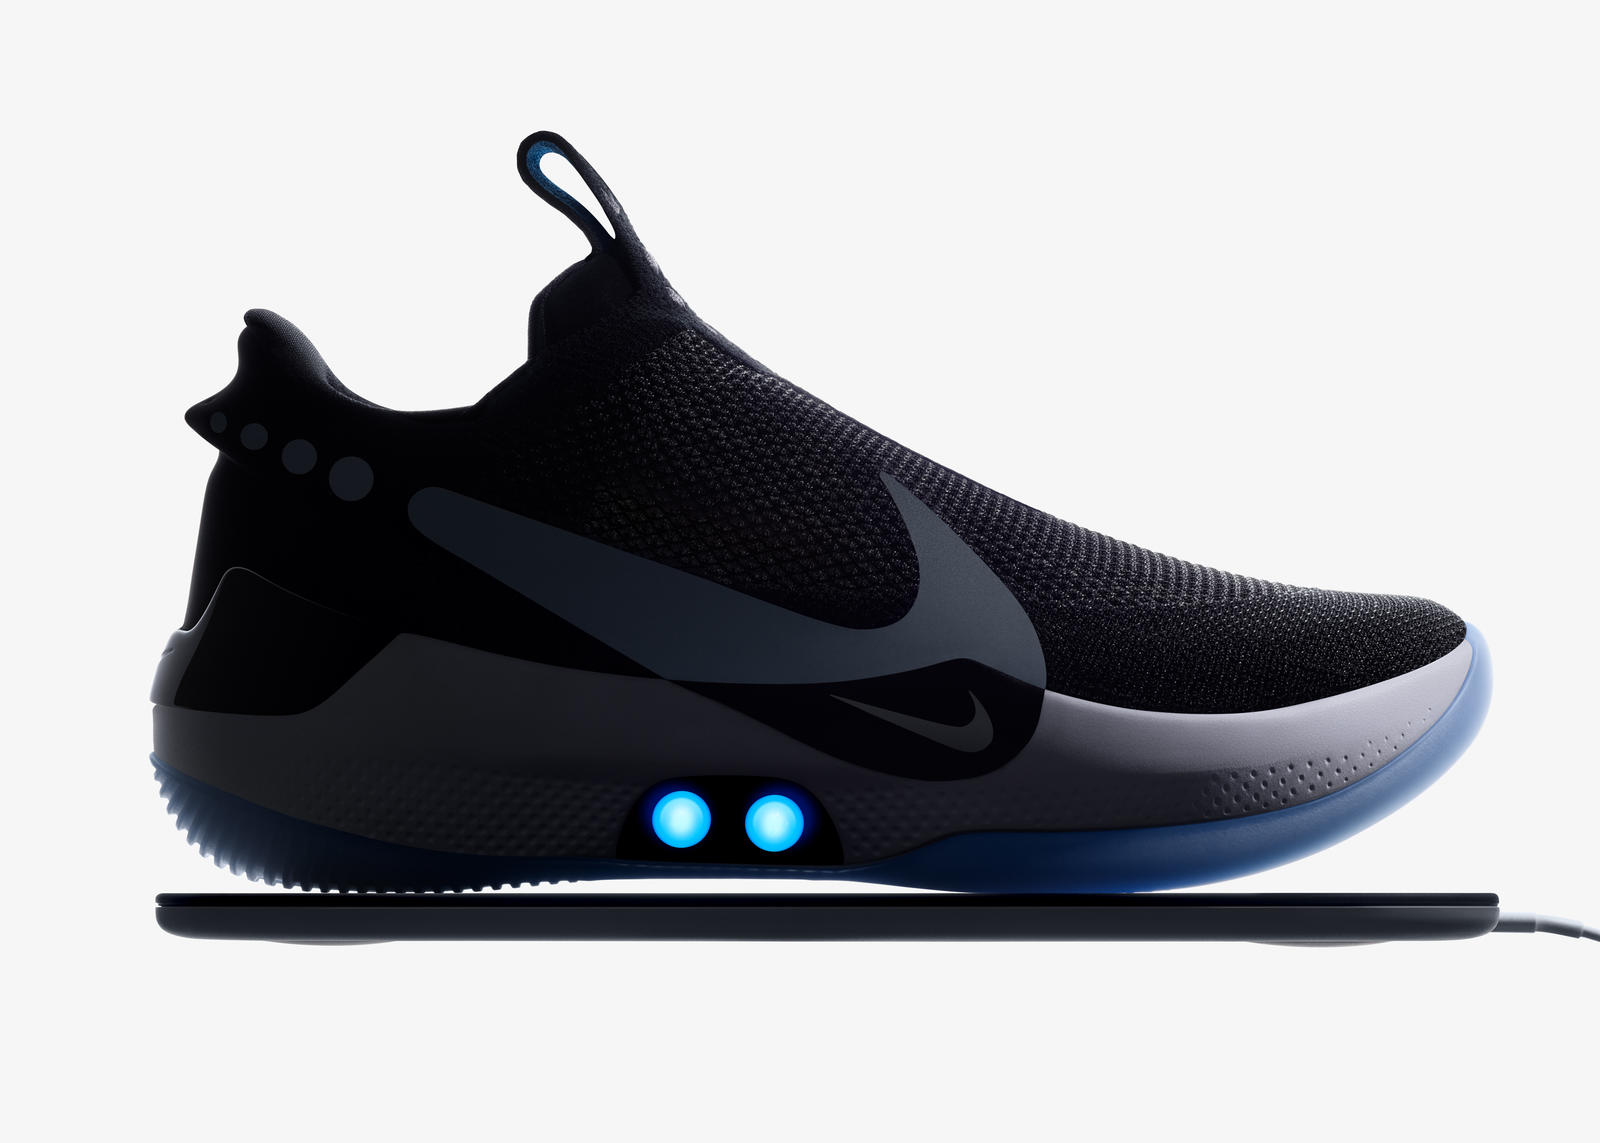 62c026fc648e8 Introducing the Nike Adapt BB - Nike News